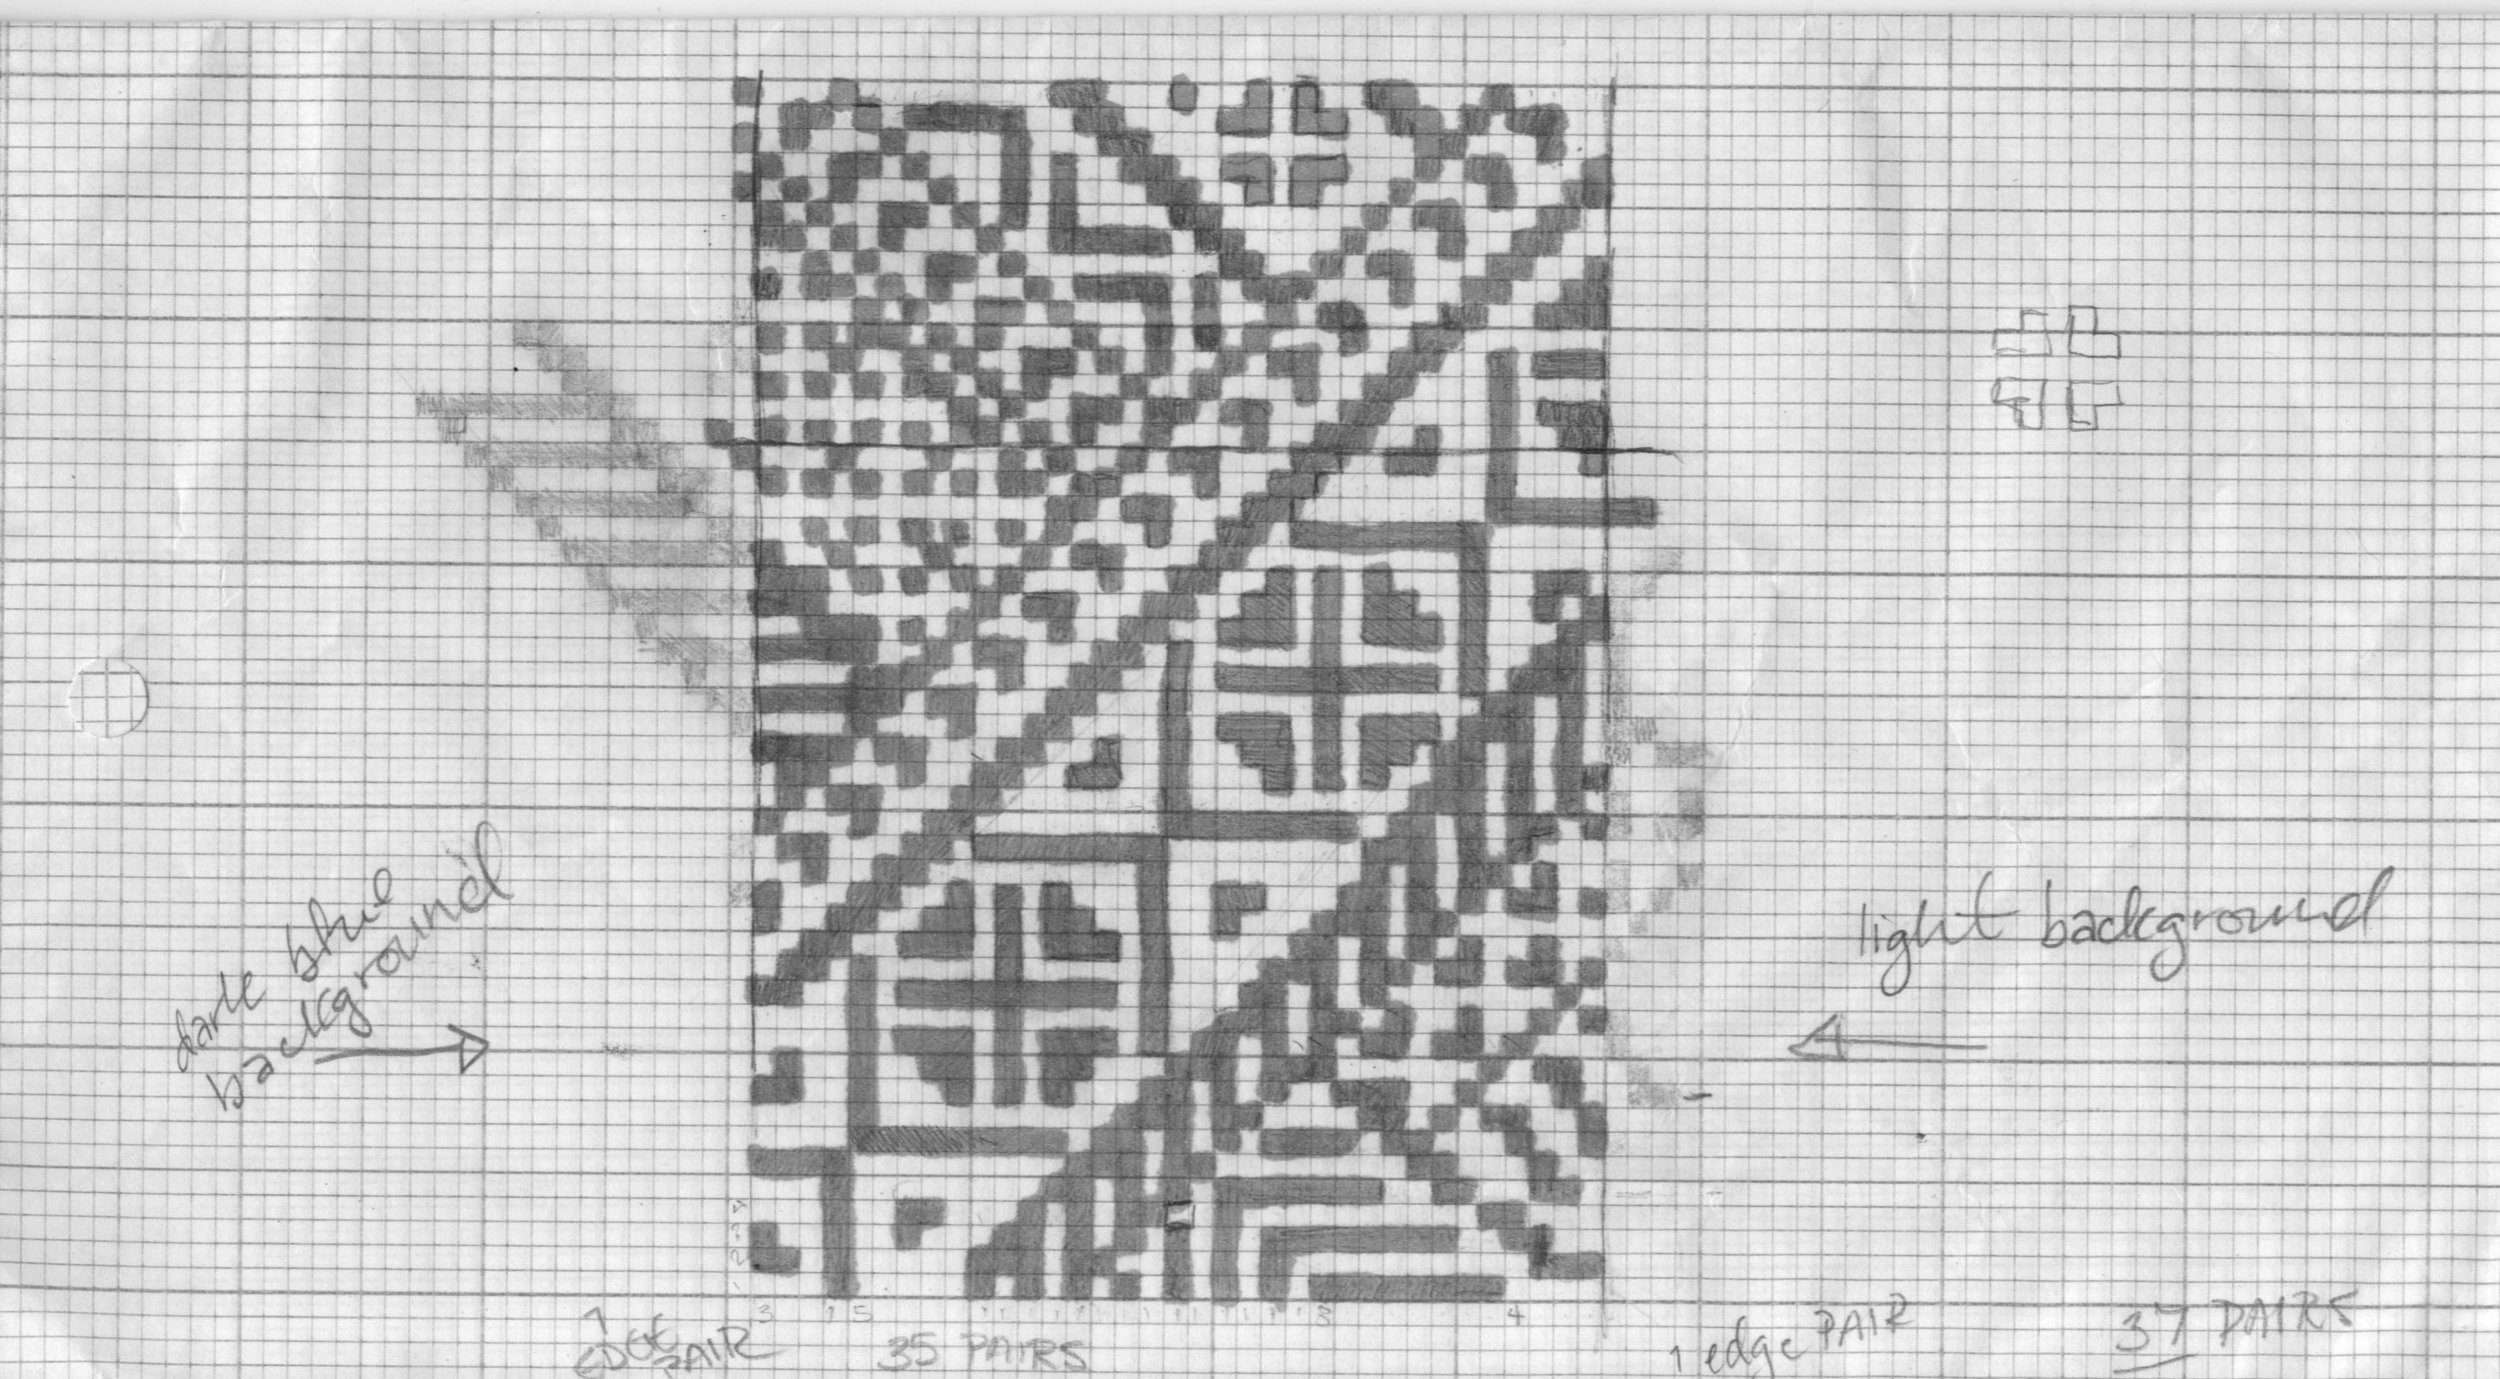 Double knit swatch and chart pattern for swatch. ©Aleks Byrd 2017